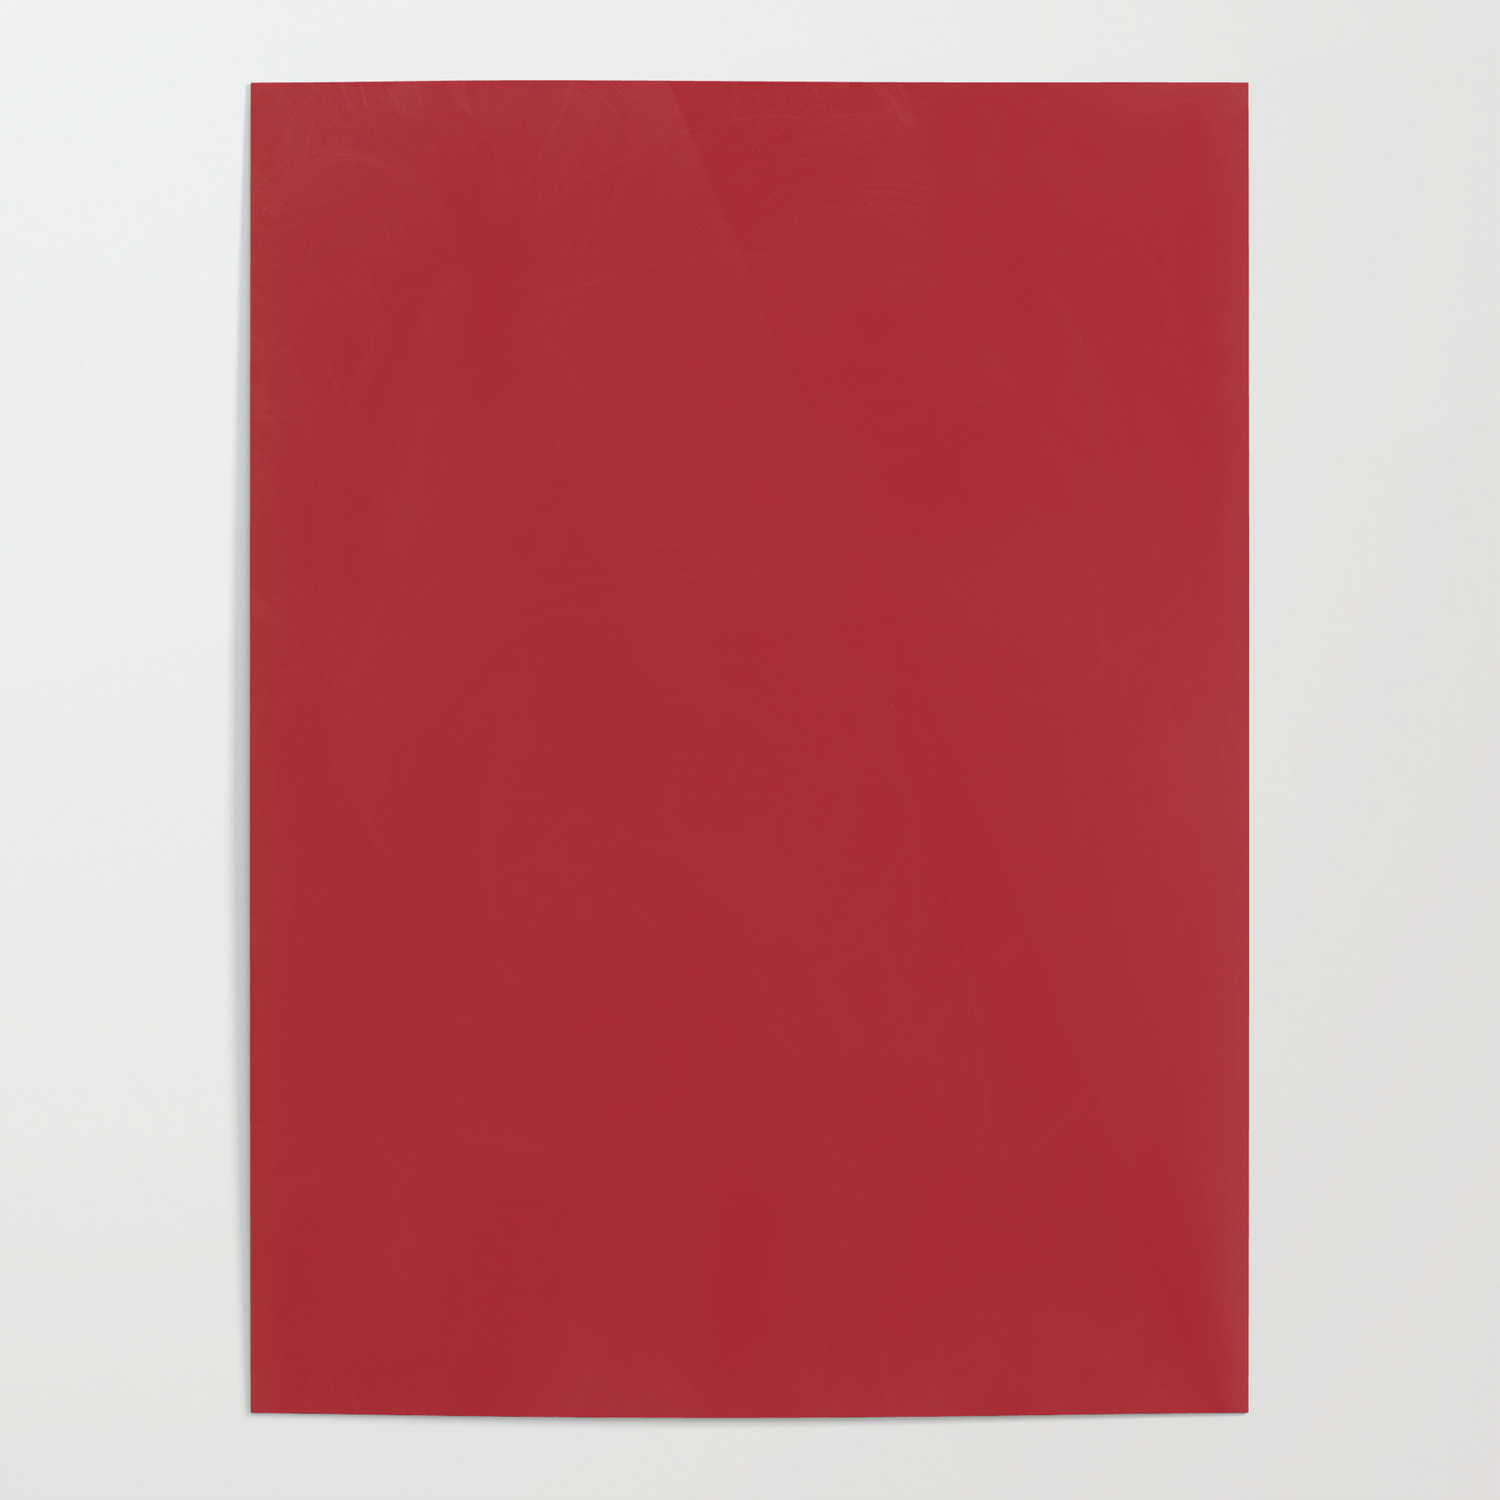 Sherwin Williams Trending Colors Of 2019 Positive Red Bold Red Sw 6871 Solid Color Poster By Simplysolids Society6